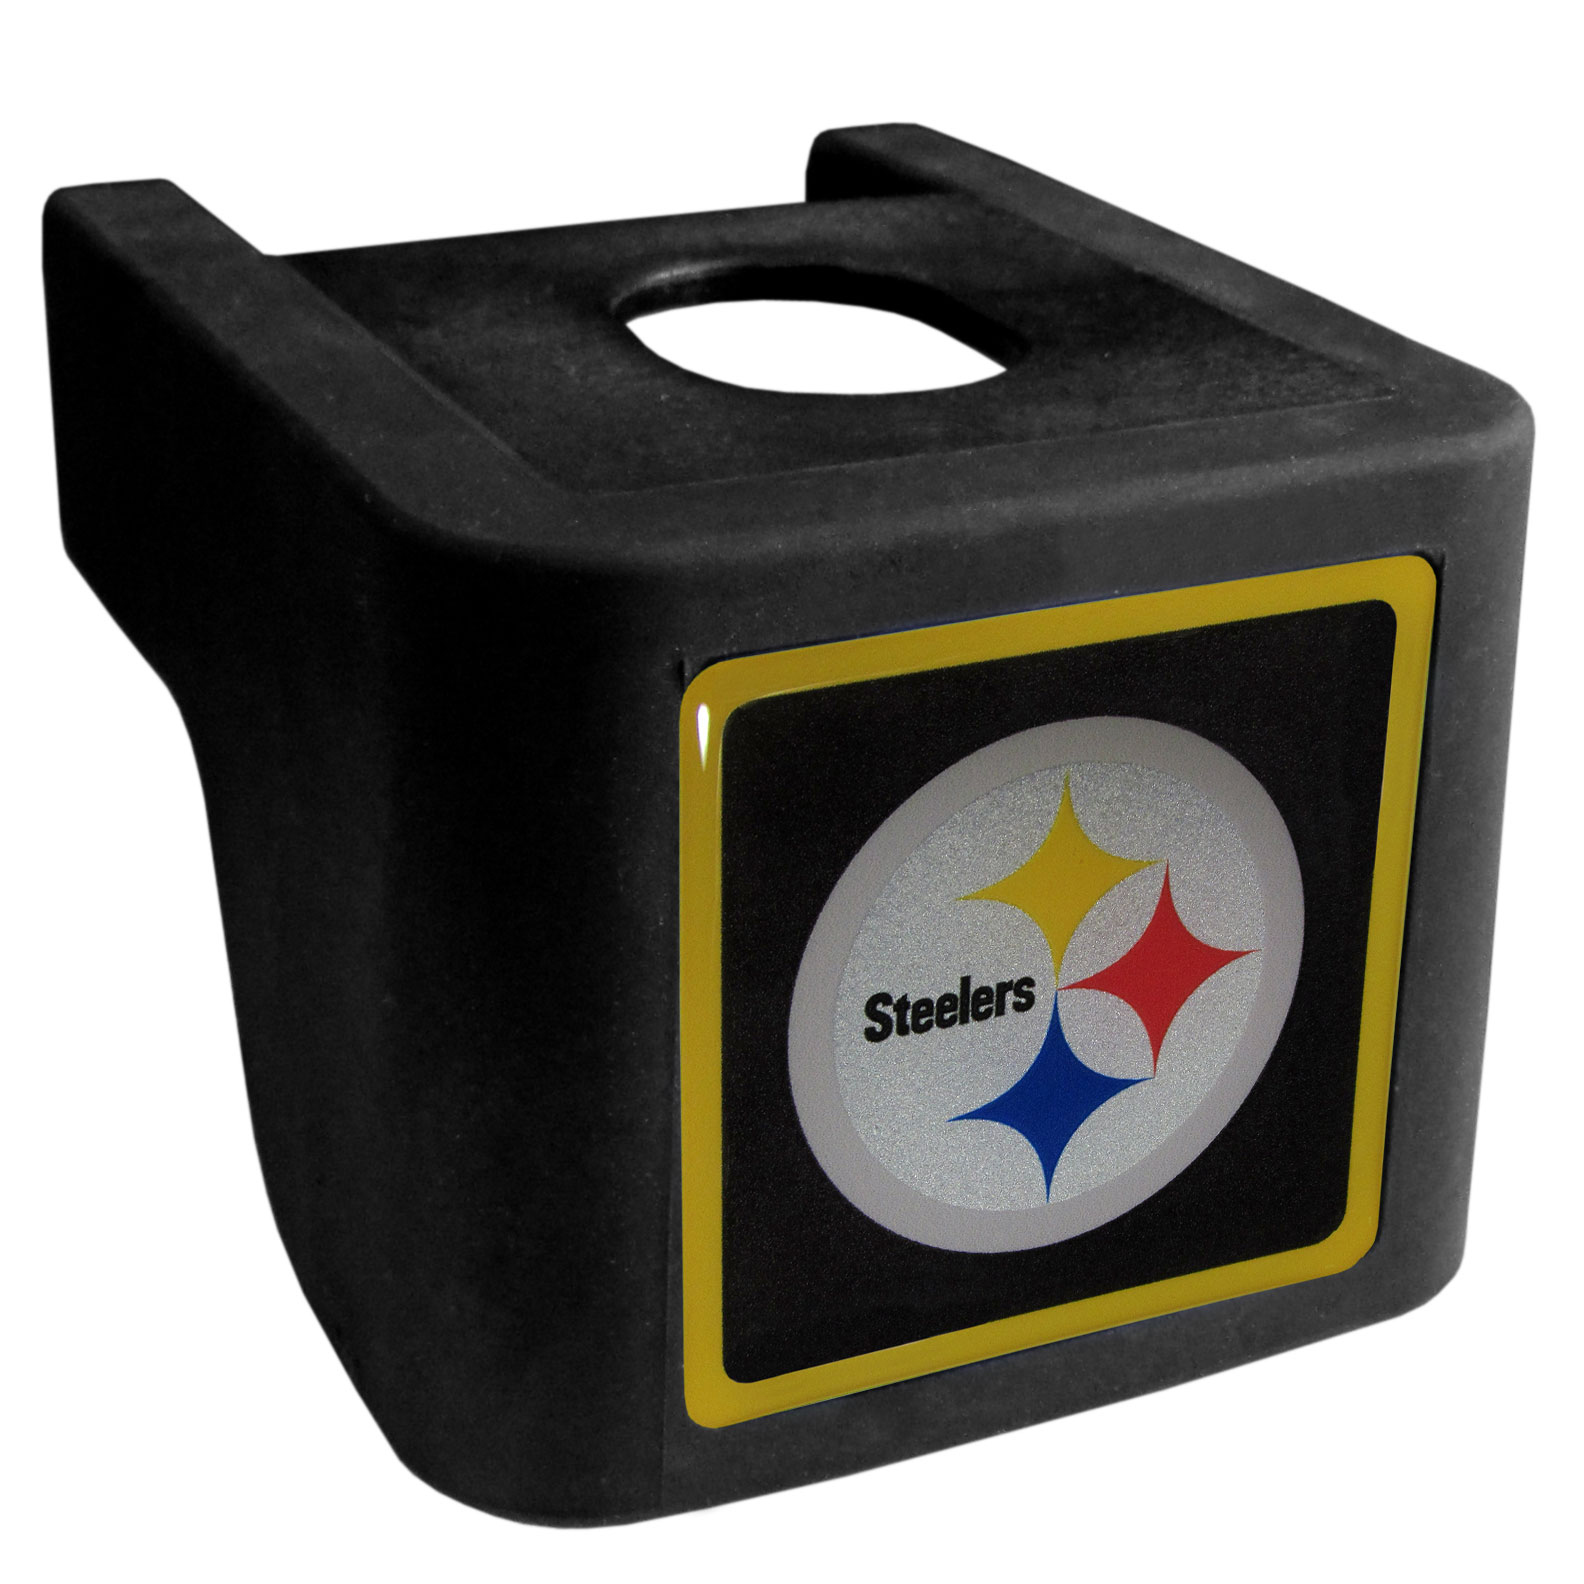 Pittsburgh Steelers Shin Shield Hitch Cover - This unique hitch cover features a large Pittsburgh Steelers logo. If you have ever hooked up a trailer or boat your have probably smashed your shins on the ball hitch a few times. This revolutionary shin shield hitch cover provides your much abused shins with the protection they deserve! The tough rubber hitch is rated to work with Class V hitch receivers hauling up to 17,000 gross trailer weight and 1,700 tongue weight allowing you to leave it on while hauling.